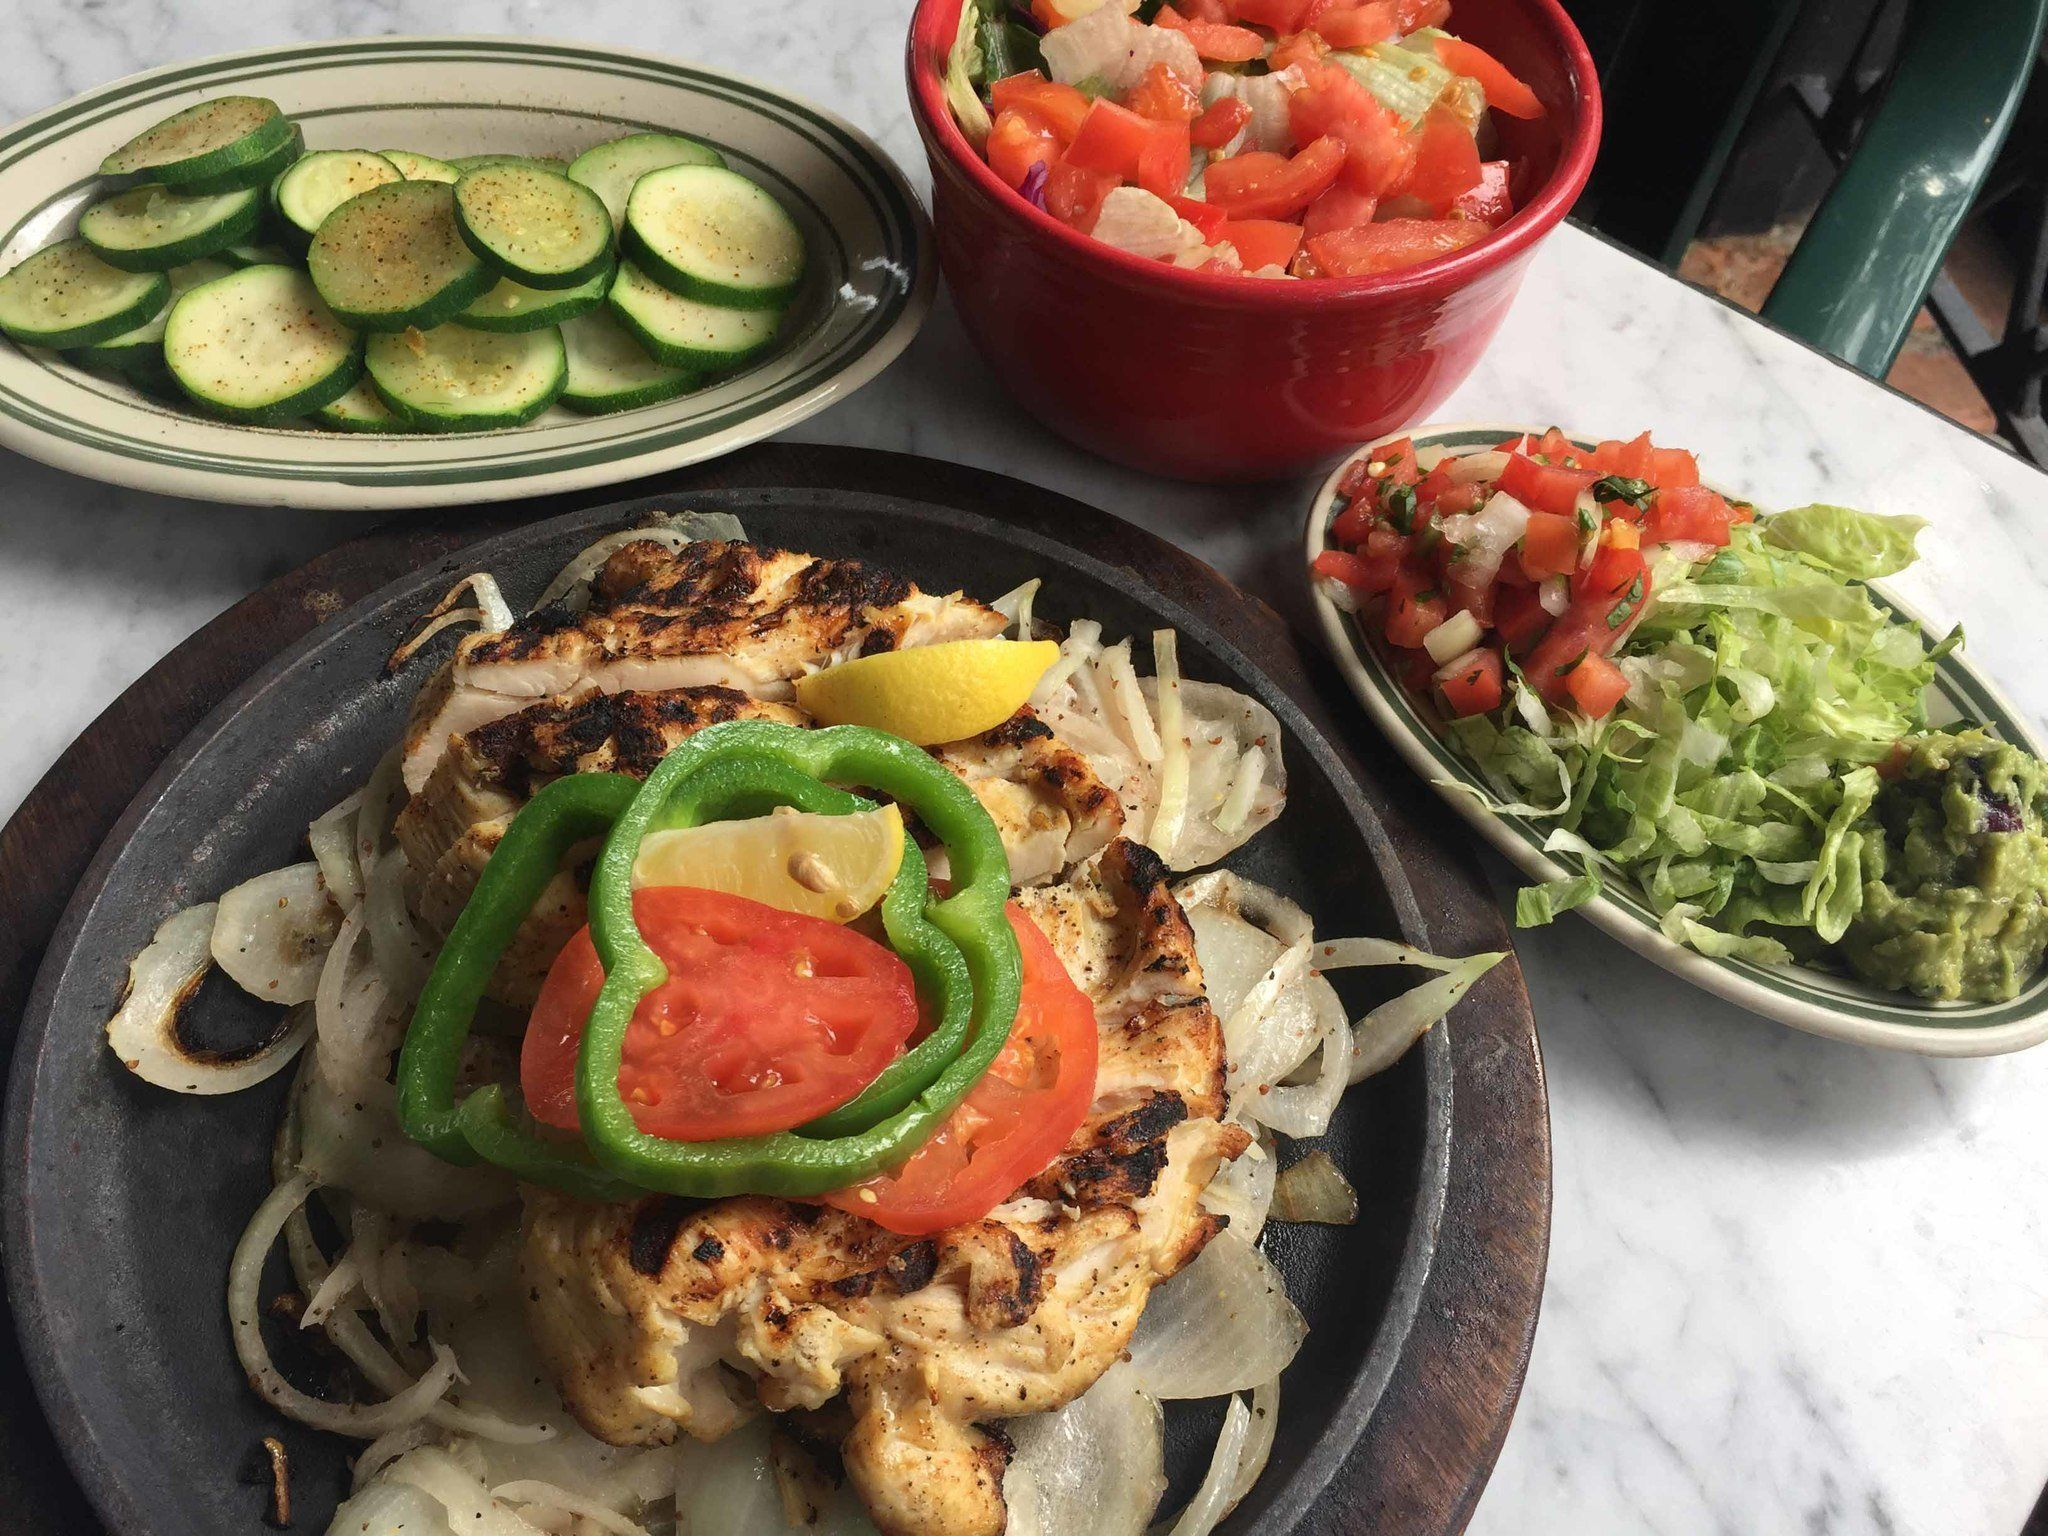 Making Mexican Food At Home Is Easy And Healthier Too